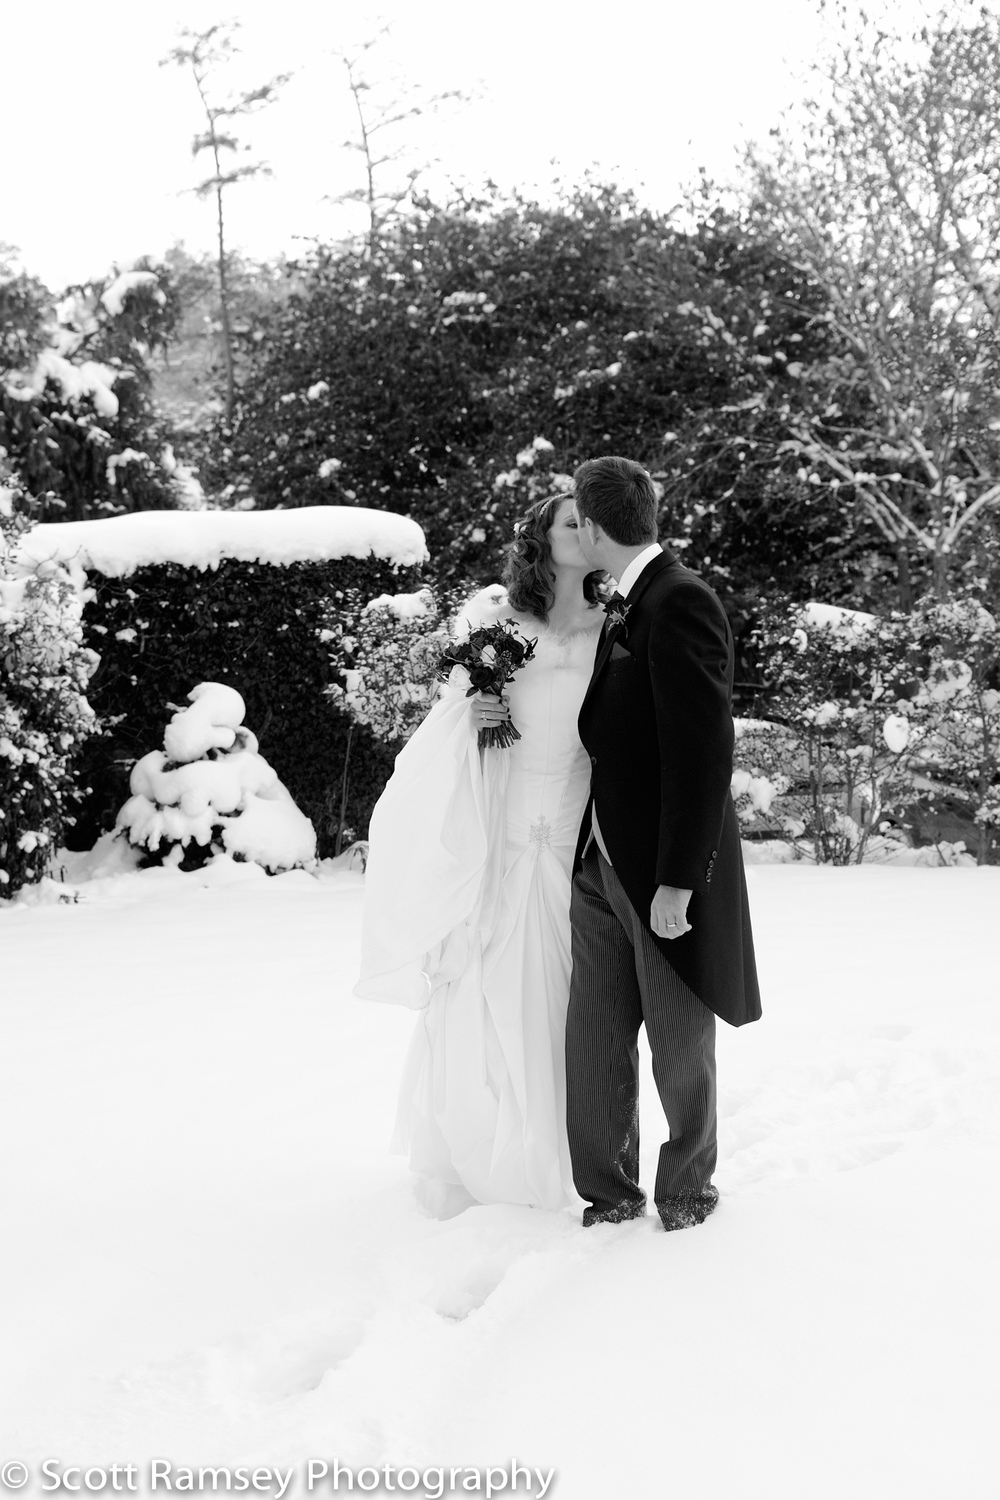 Winter-Wedding-Spread-Eagle-Hotel-Midhurst-Romantic-Bride-Groom-